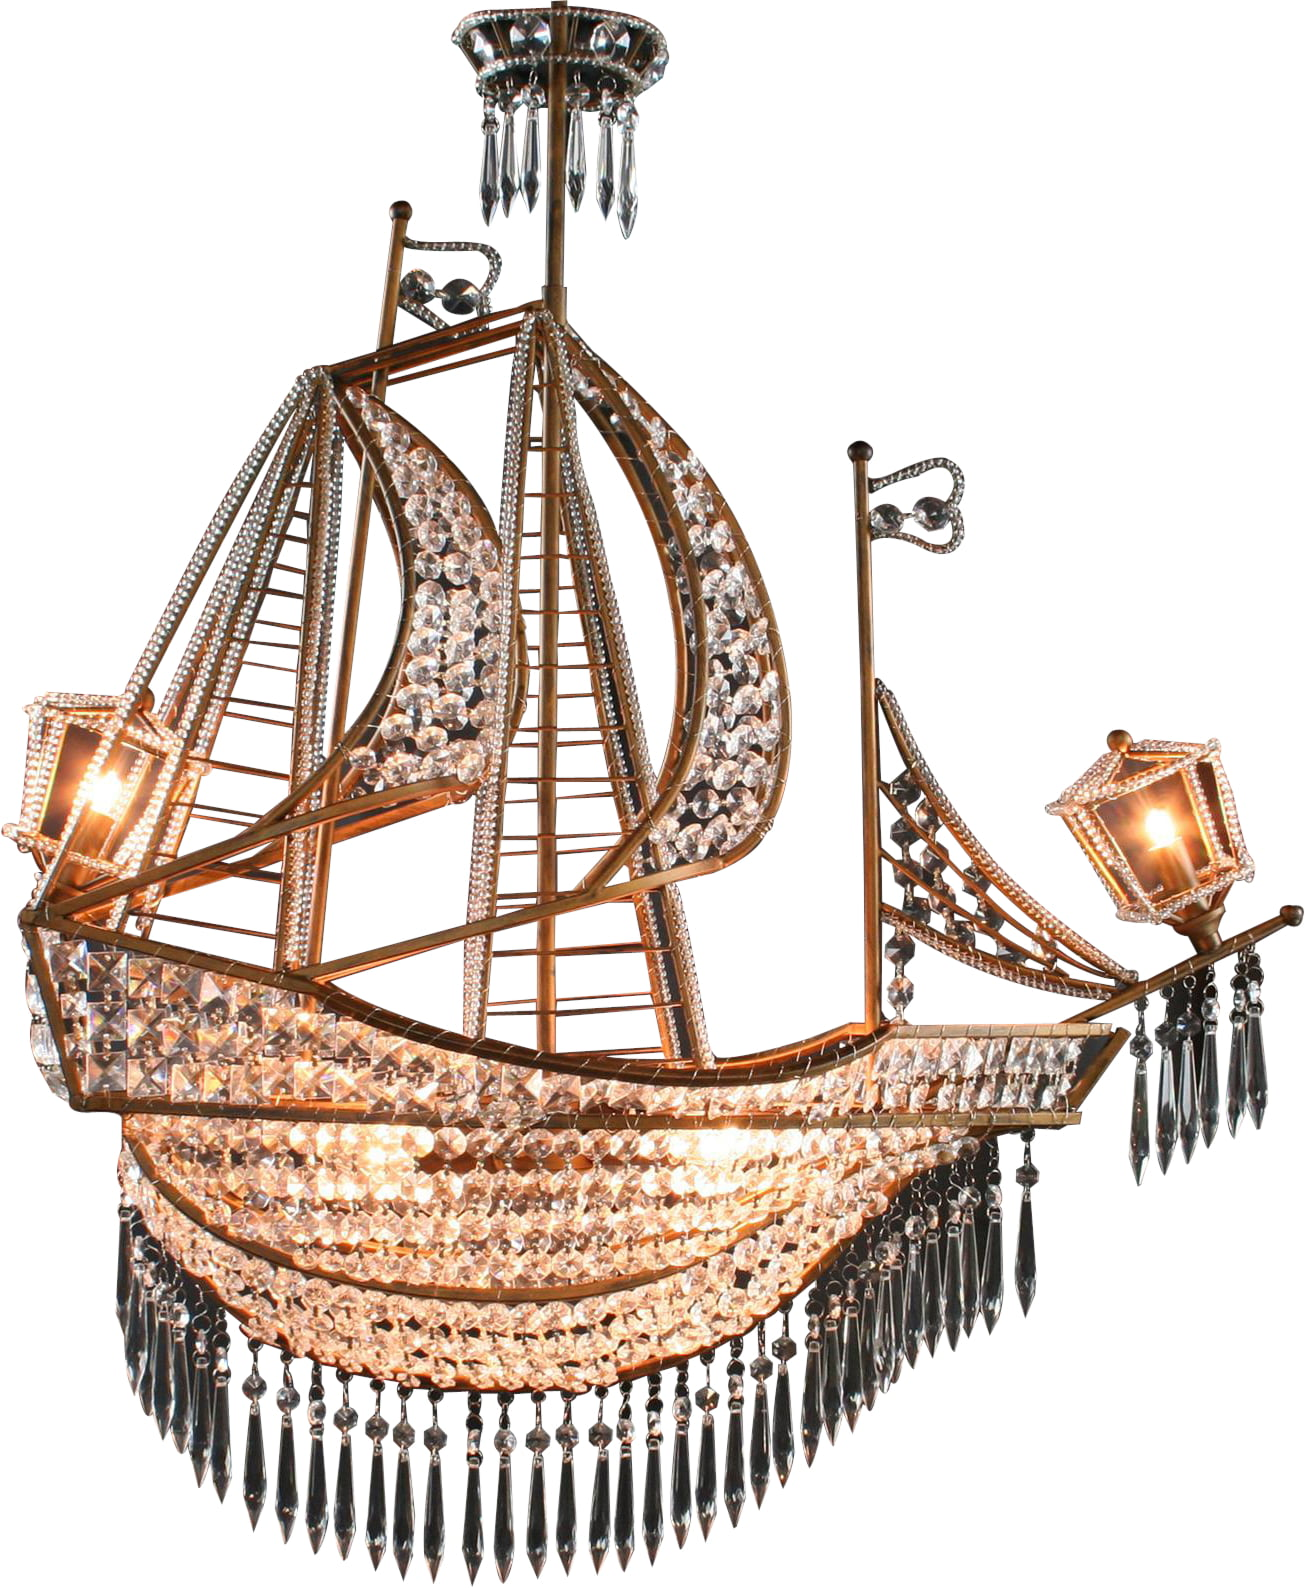 New Large Sailing Ship Crystal Chandelier, 6 Lights, Glass & Antiqued Bronze by